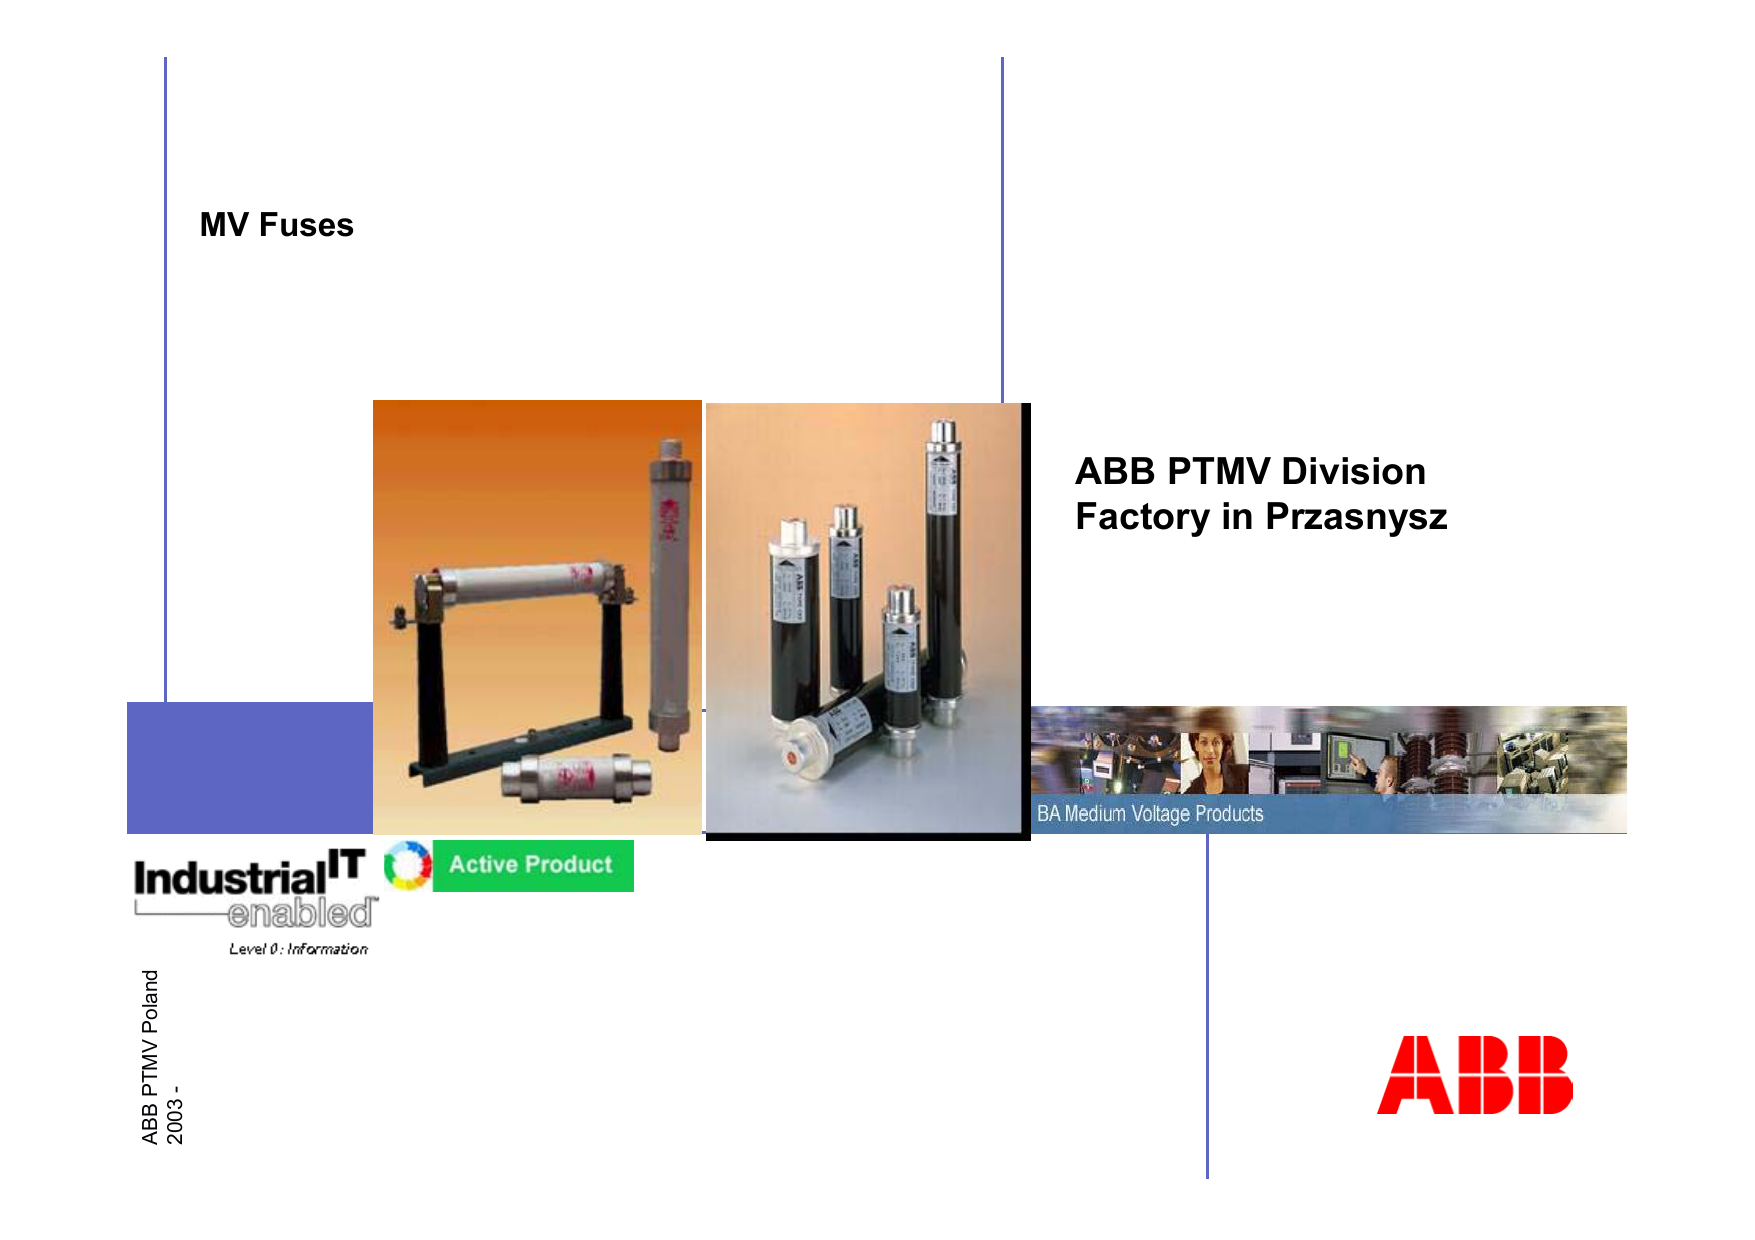 ABB High Voltage Fuse Links - Overview Presentation of Fuses